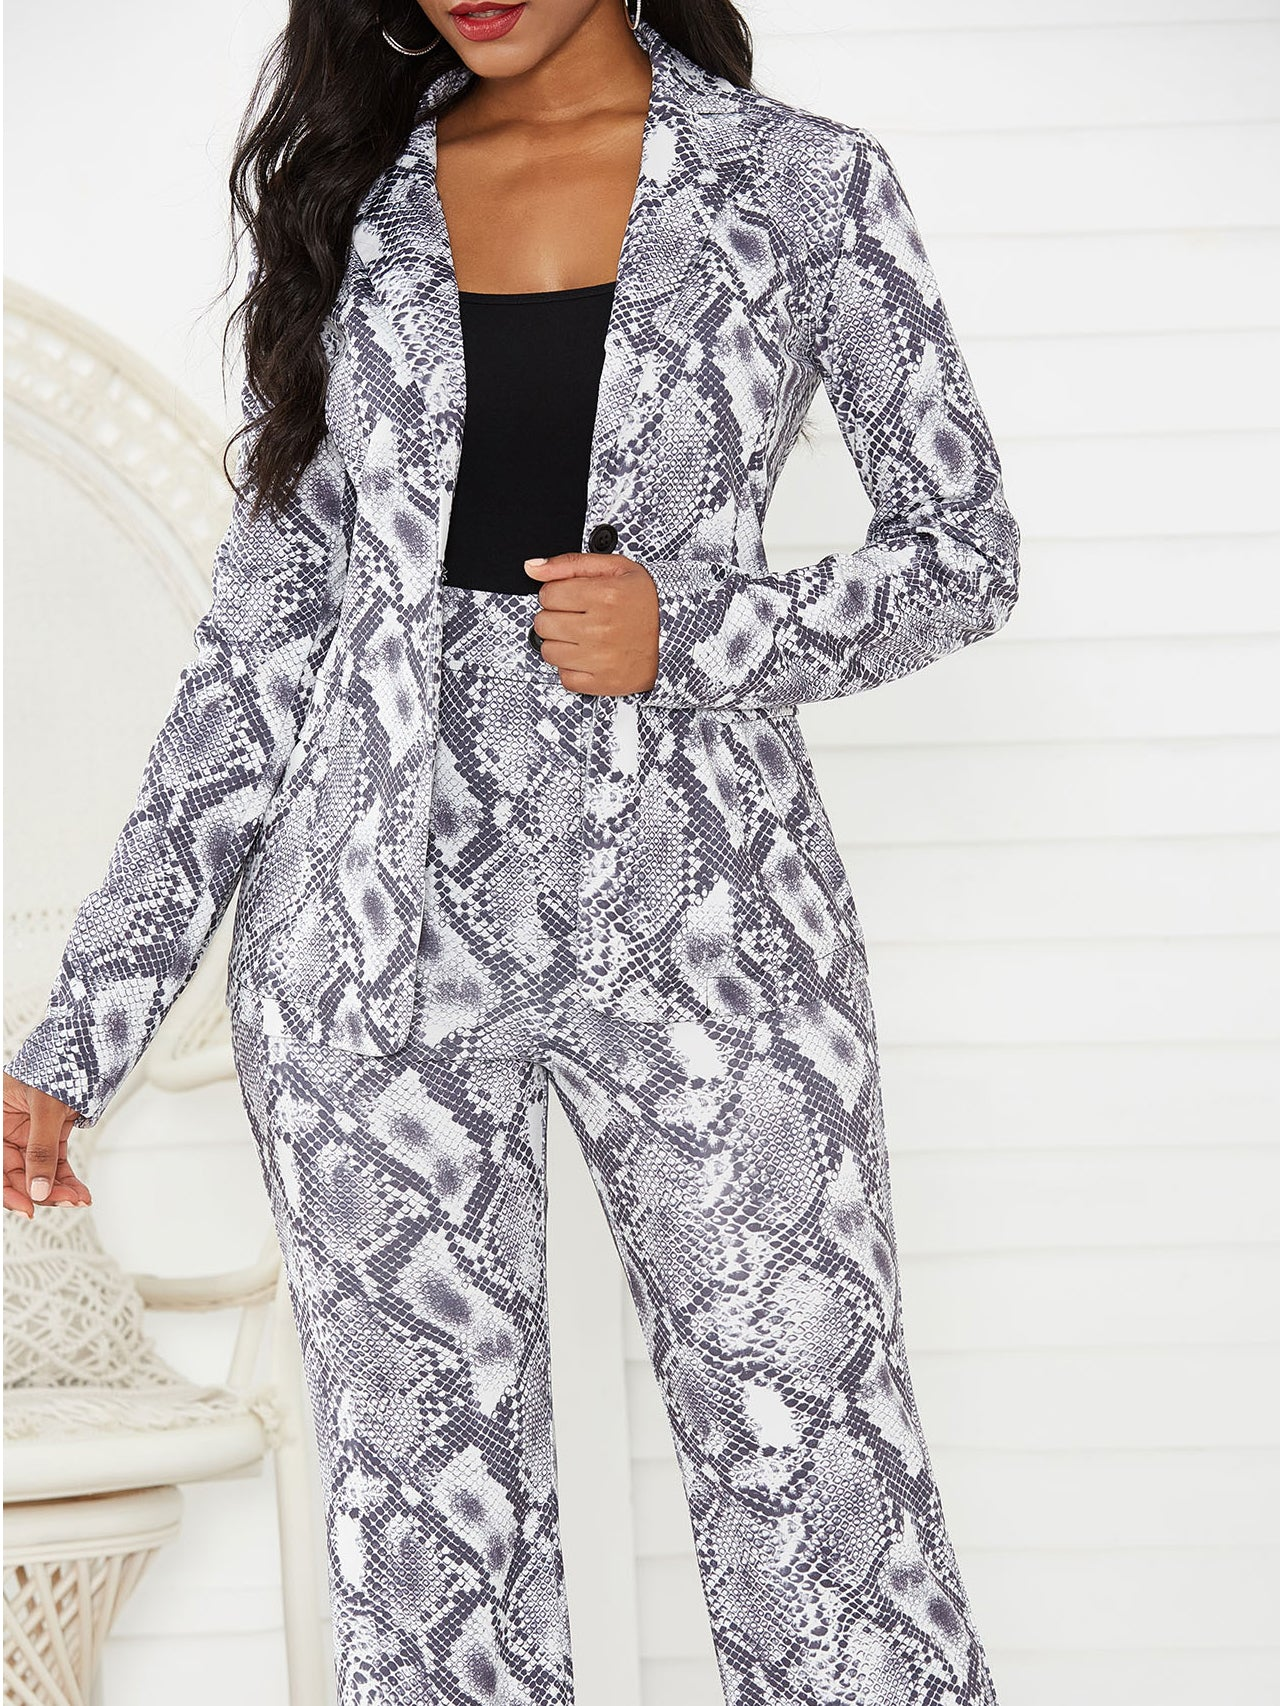 Stylish Snakeskin Printed Long Sleeve Women Suits